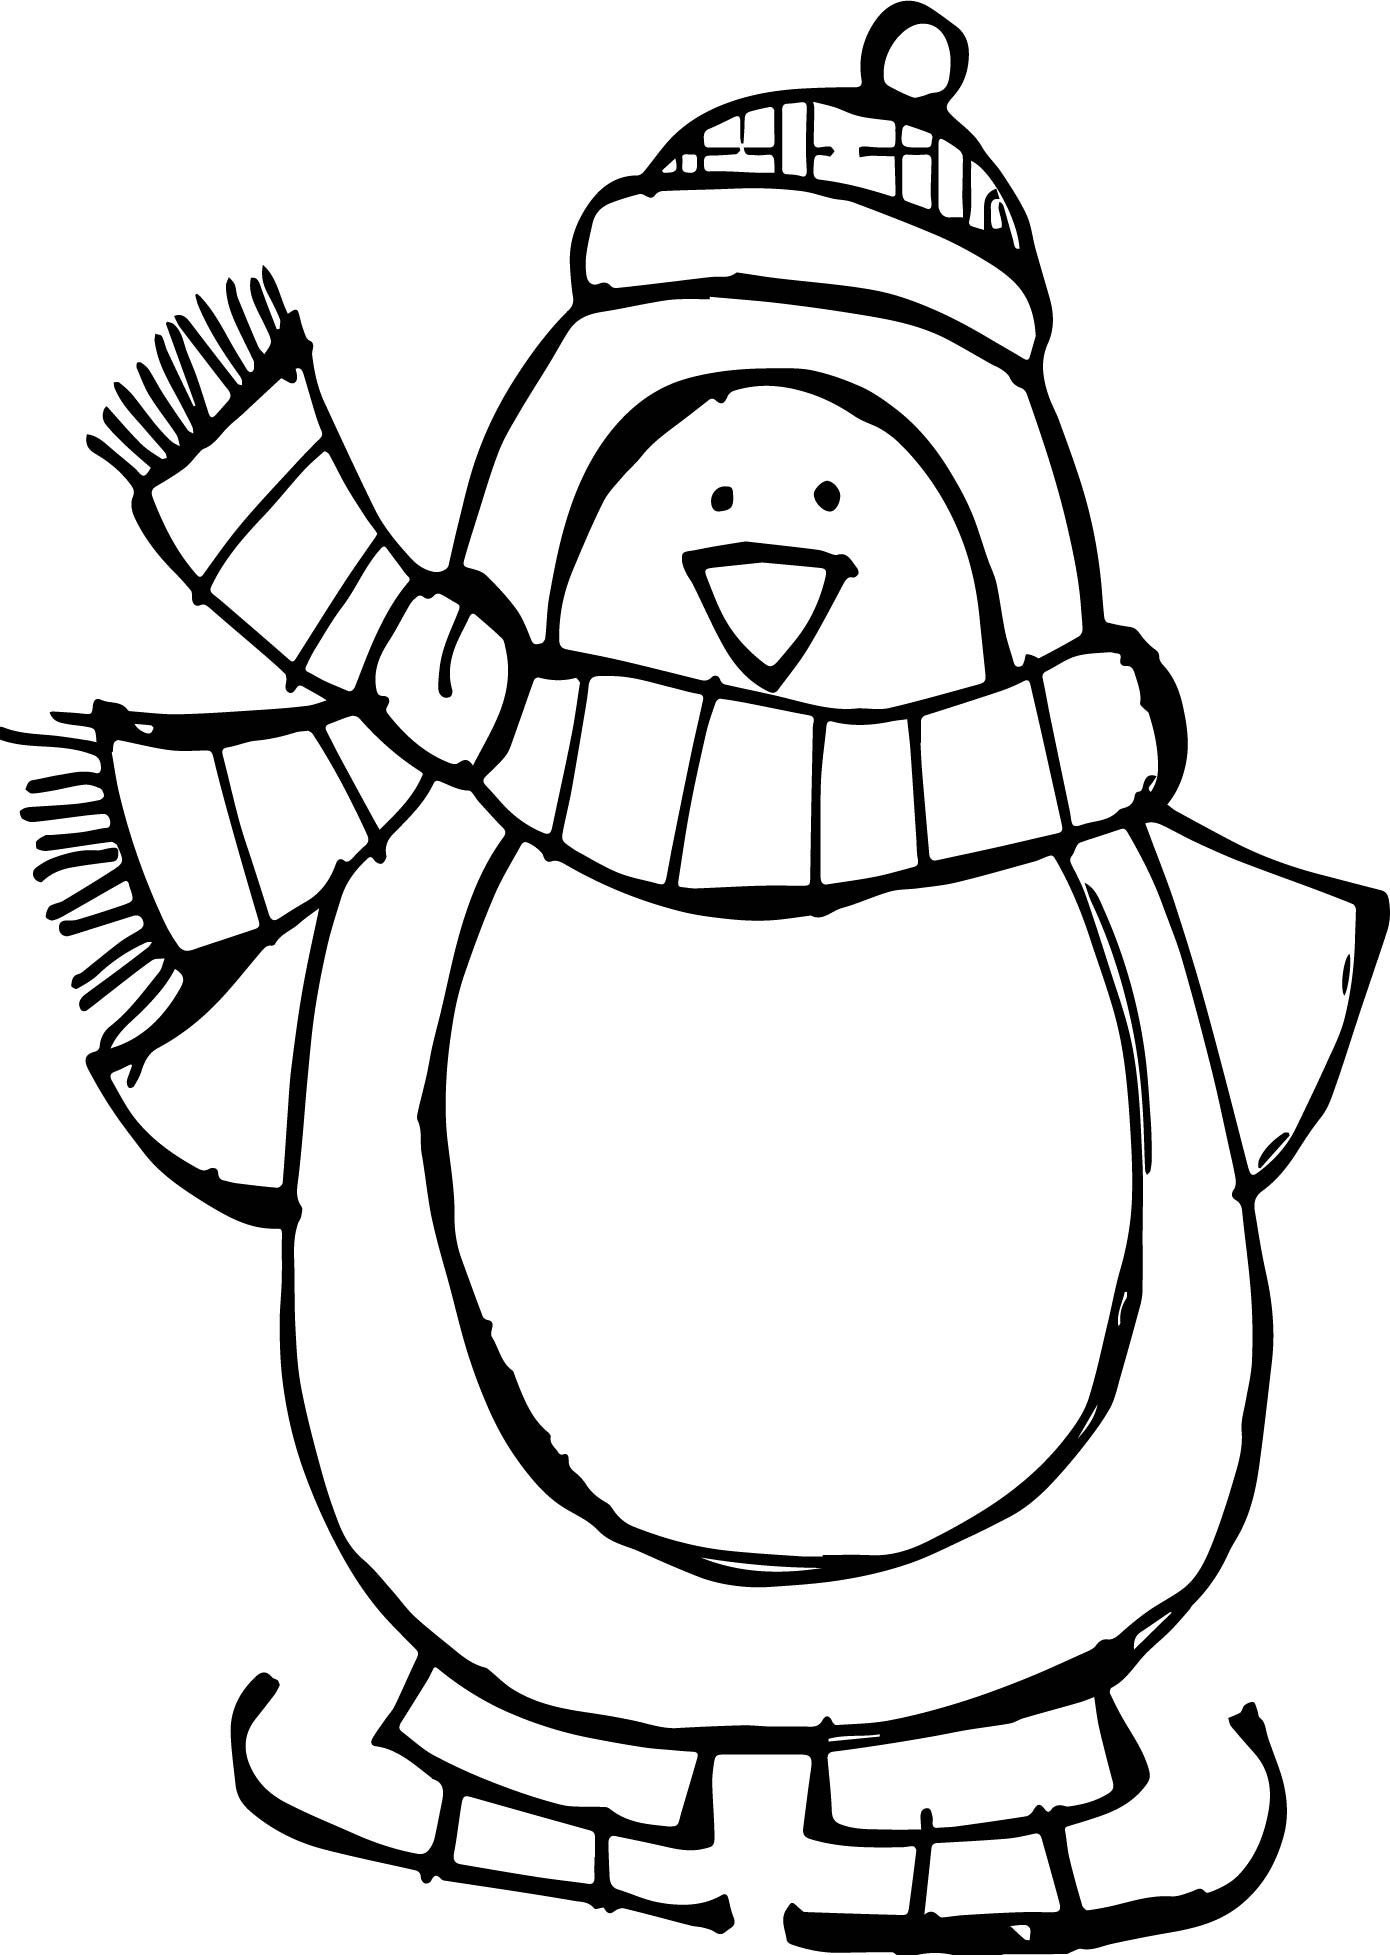 Christmas Penguin Drawing   Free download on ClipArtMag